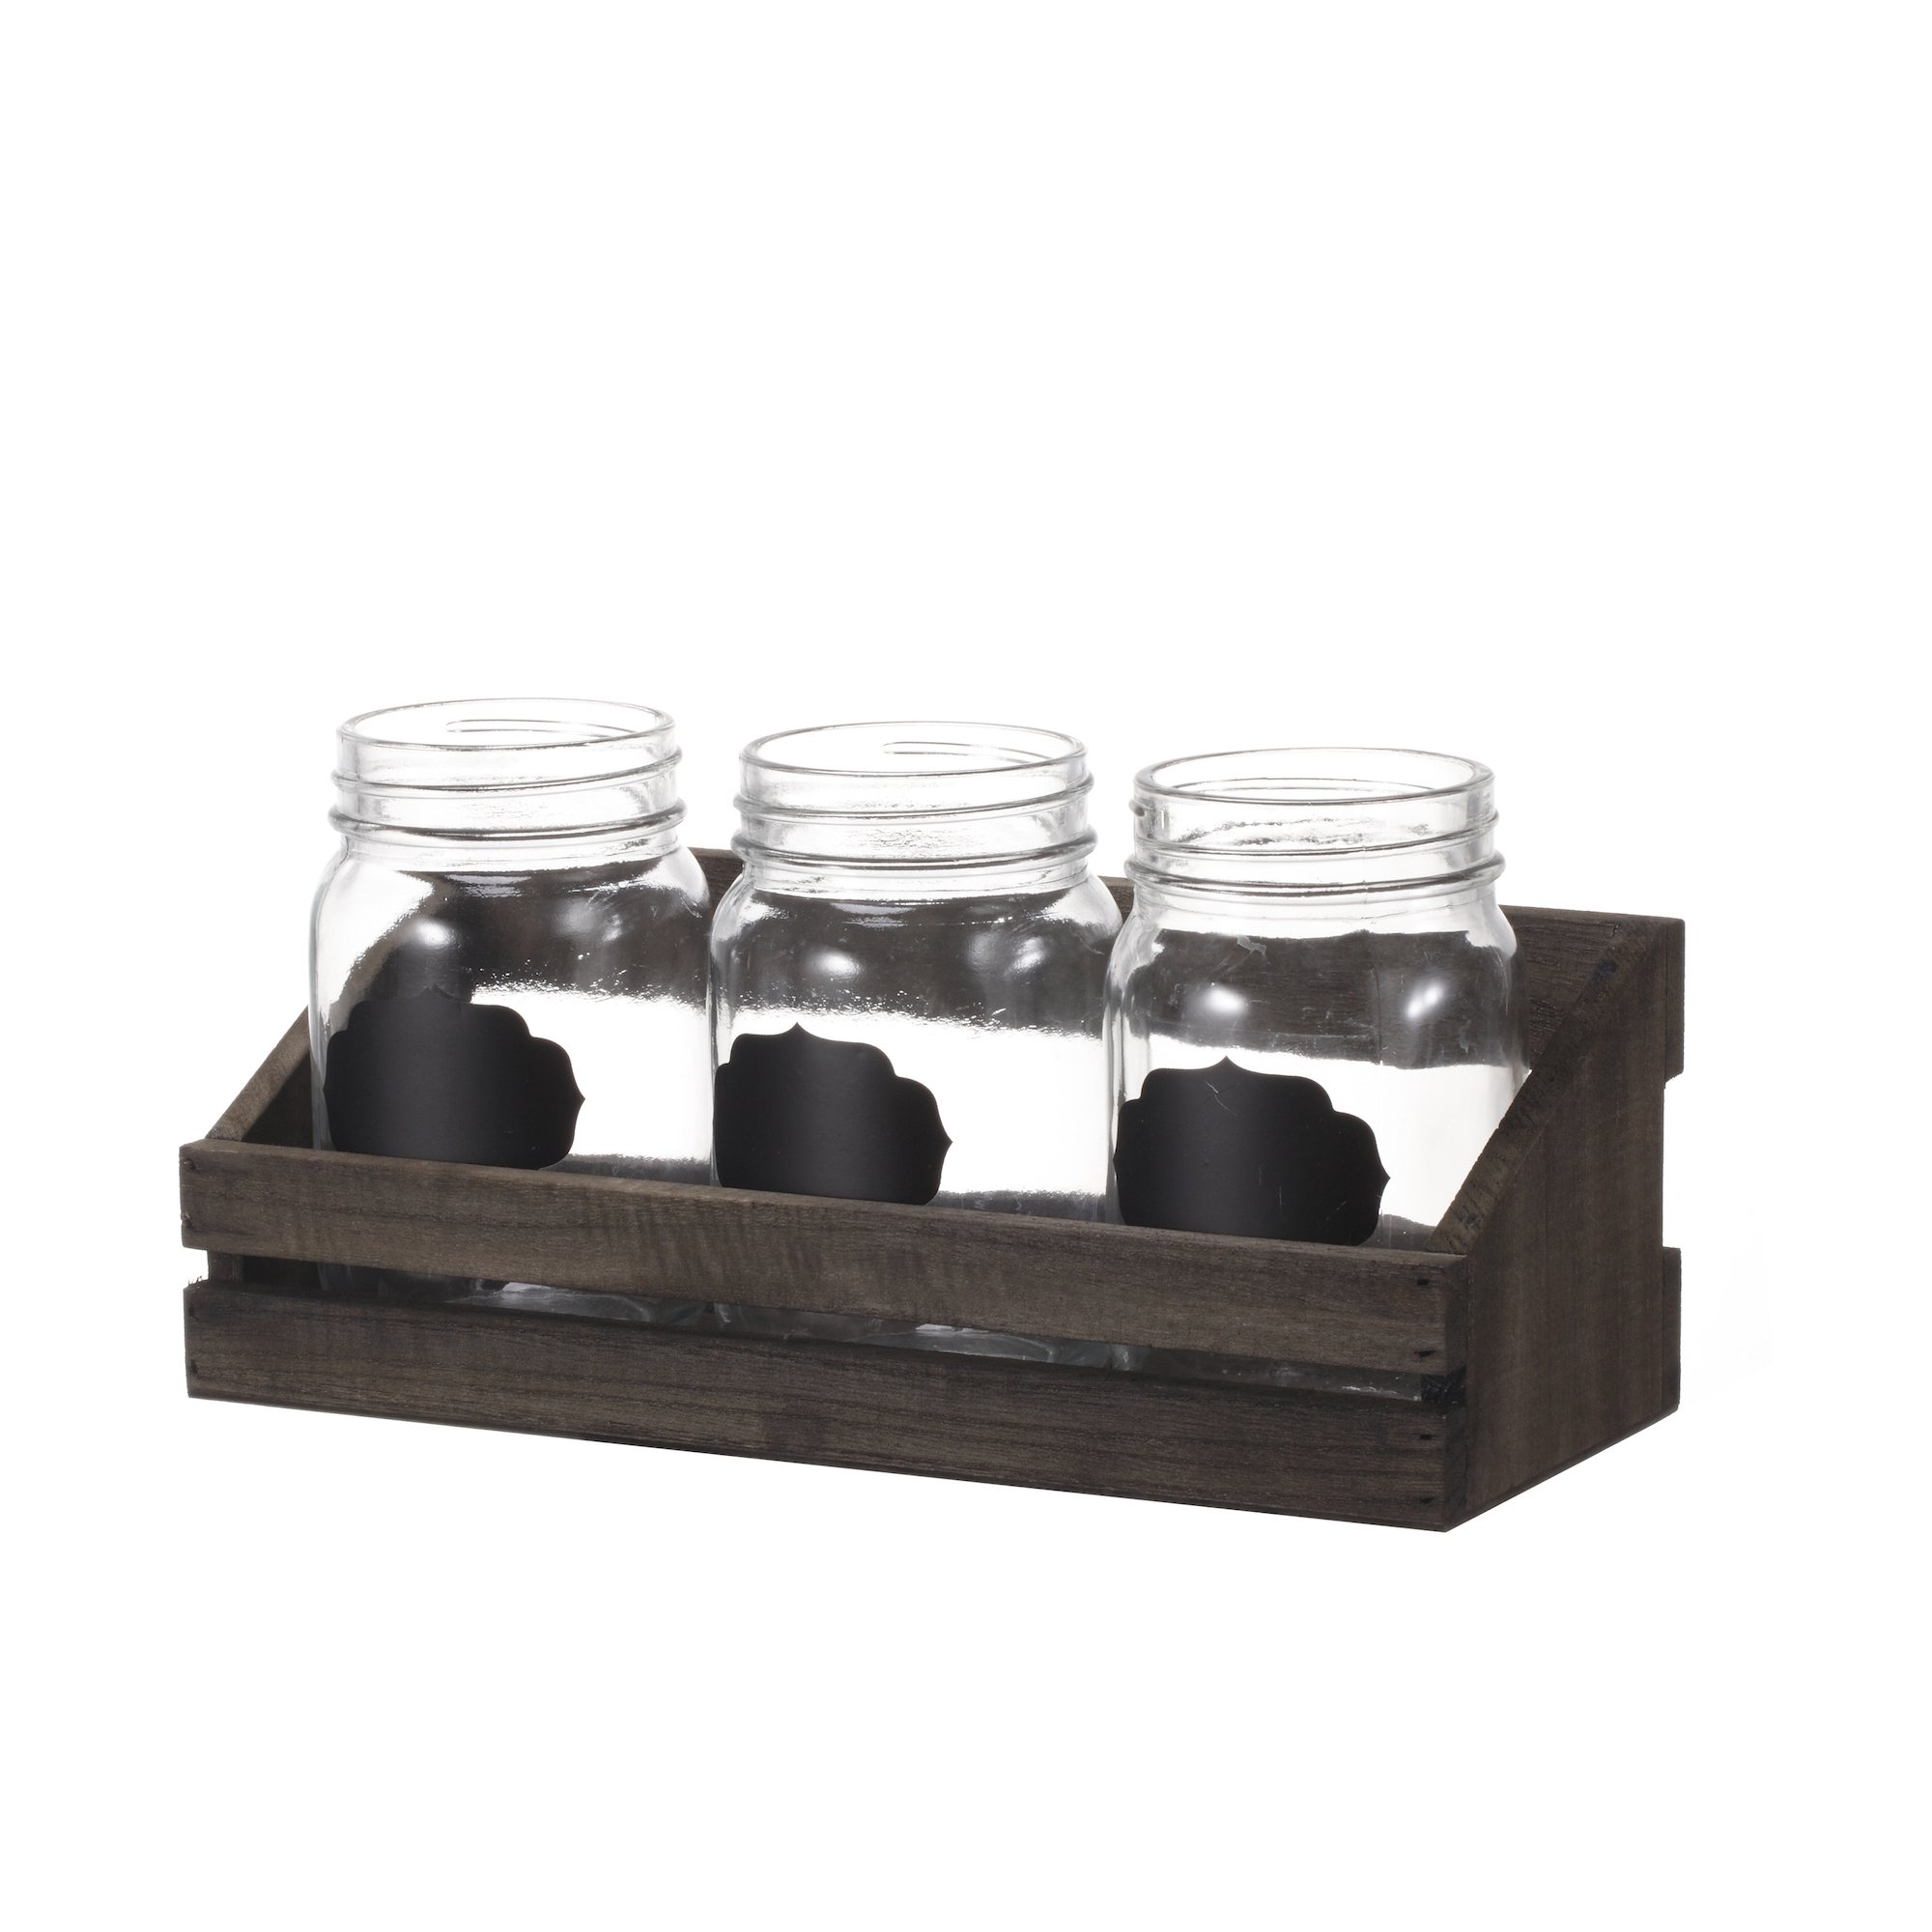 V-More Bud Vase with Chicken Wire Basket V-More Rustic Glass Mason Jar with Chalkboard Label and Wooden Tray 6.5-inch Tall For Home Decor Wedding Party Celebration by V-More Bud Vase with Chicken Wire Basket (Image #2)